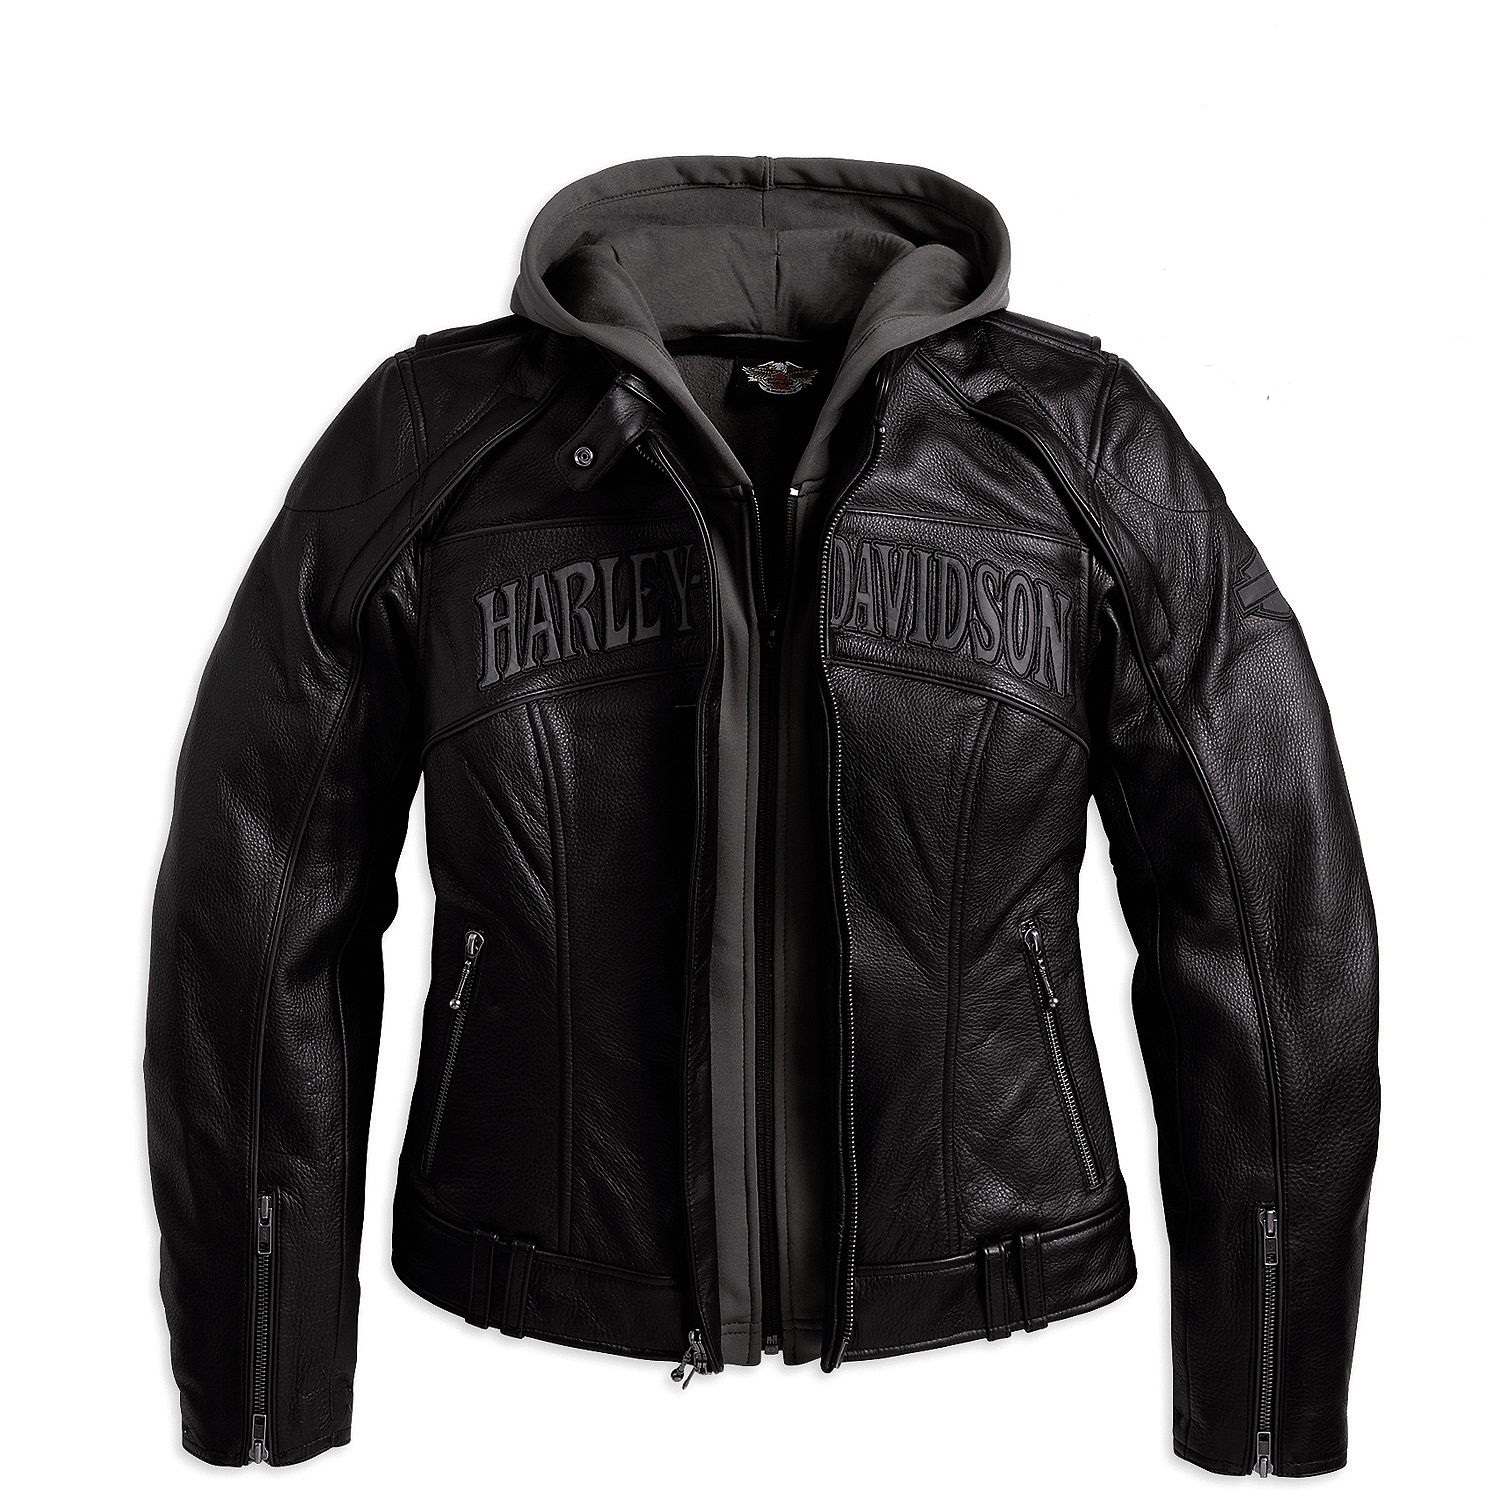 Harley Davidson Womens Leather Jacket